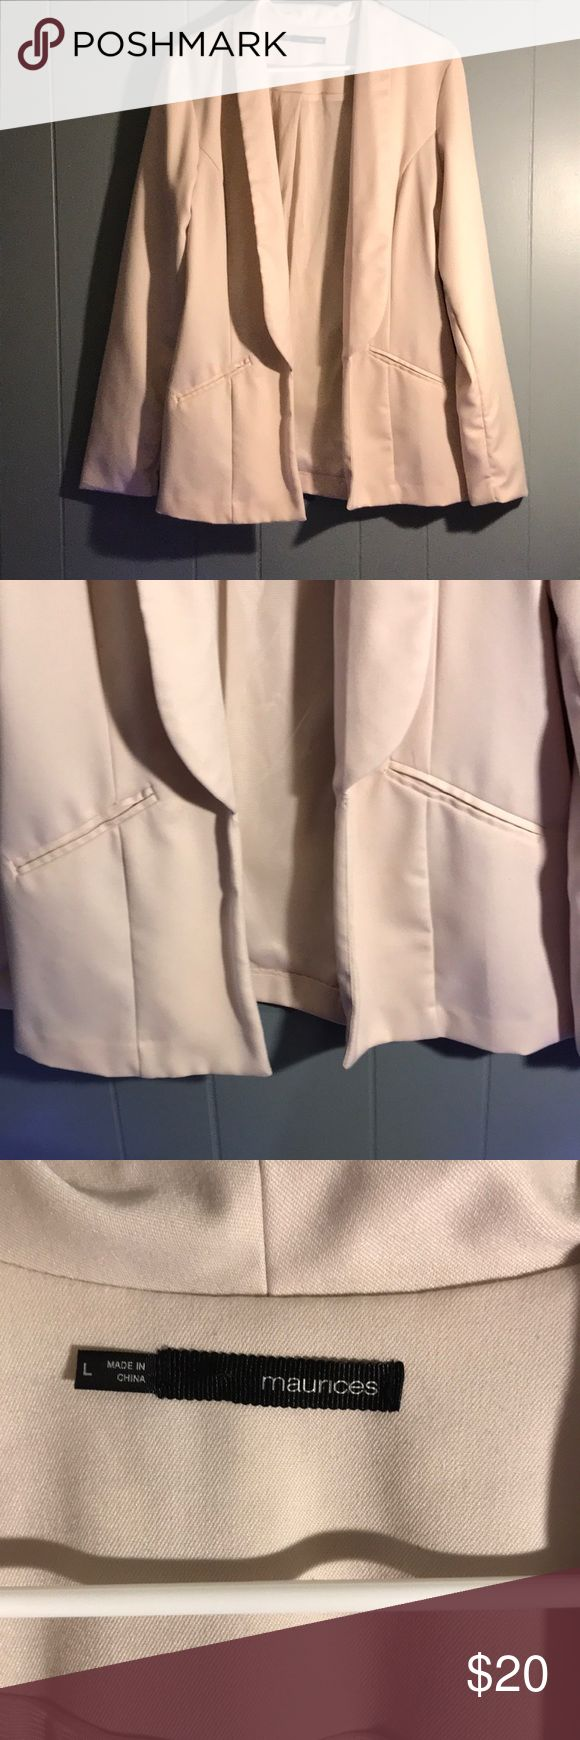 Maurices light pink blazer size L Maurices long length blazer size Large, pale pink color with two faux pockets on front. Worn only a couple times! Maurices Jackets & Coats Blazers